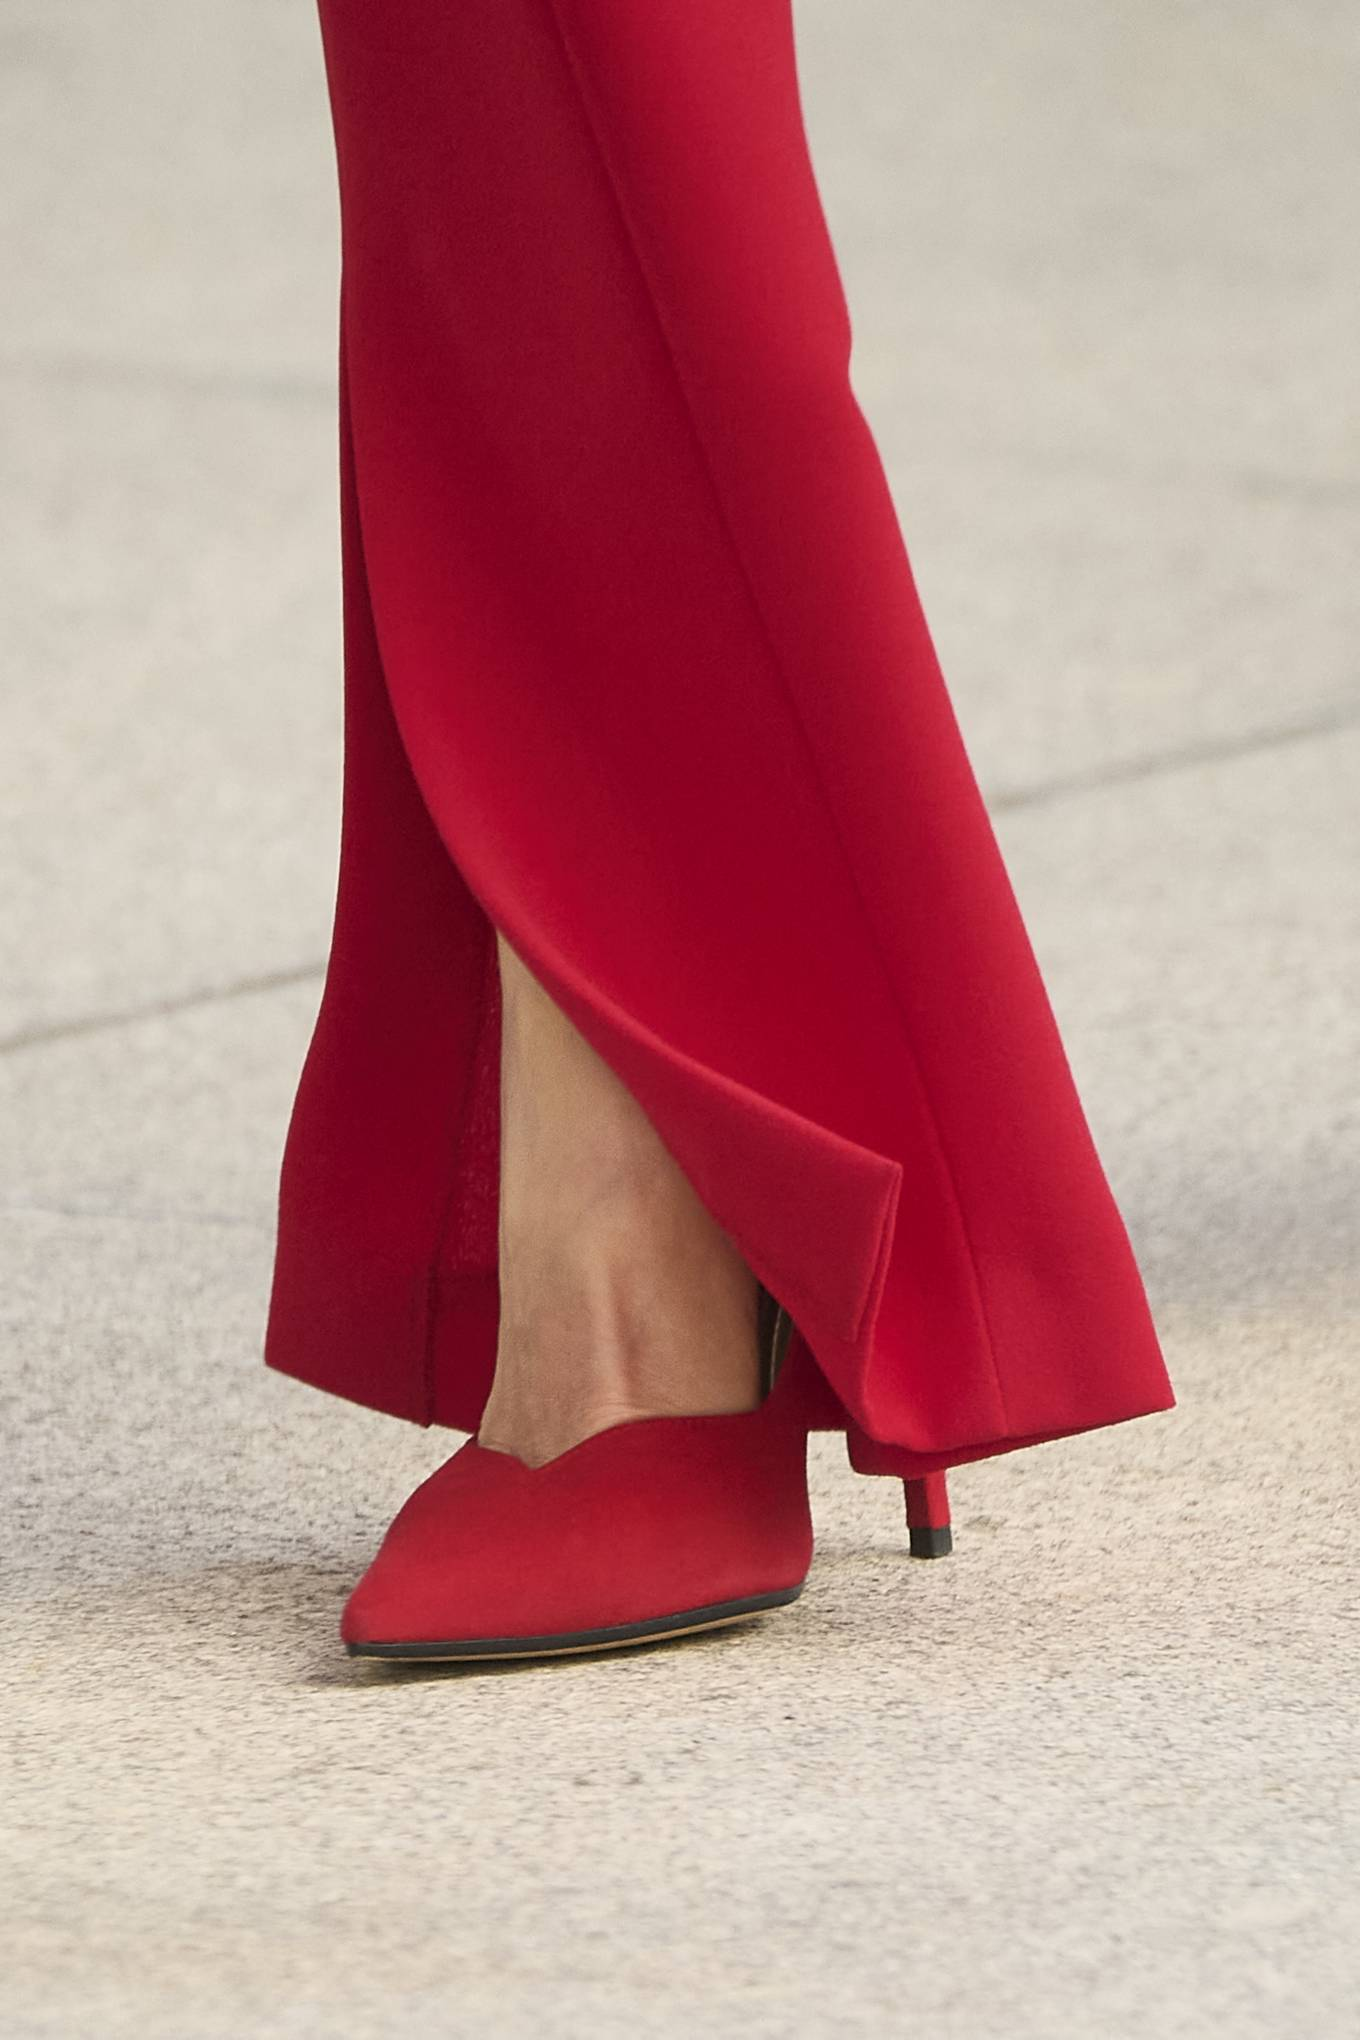 Queen Letizia Of Spain 2021 : Queen Letizia of Spain – In all red attends the tribute to the figure of Clara Campoamor in Madrid-11